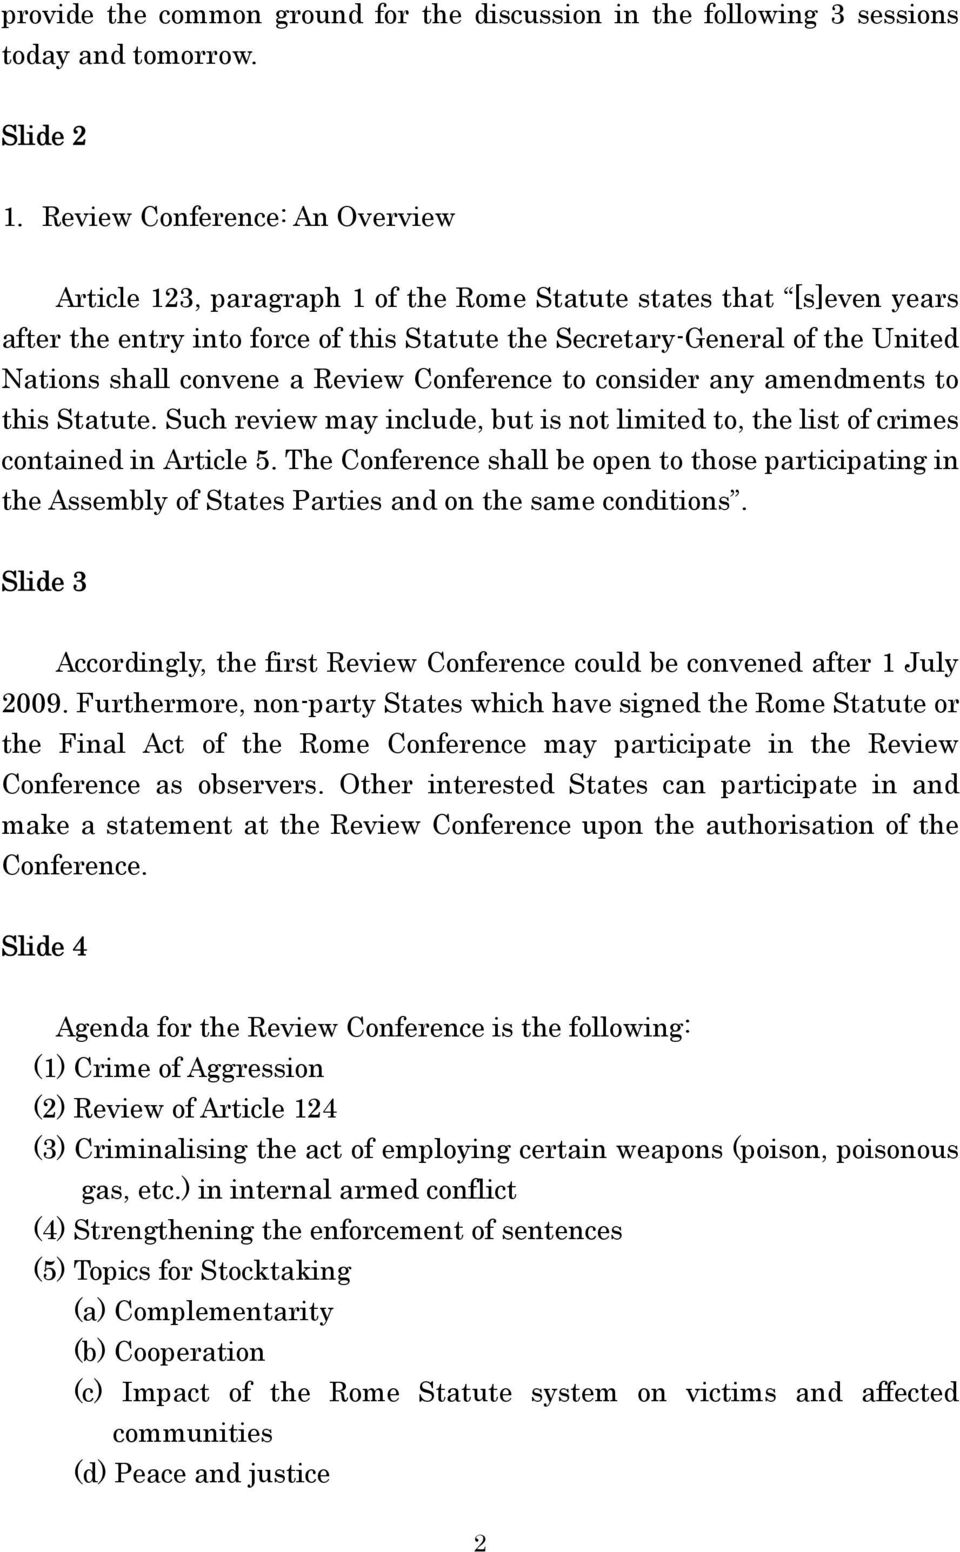 convene a Review Conference to consider any amendments to this Statute. Such review may include, but is not limited to, the list of crimes contained in Article 5.